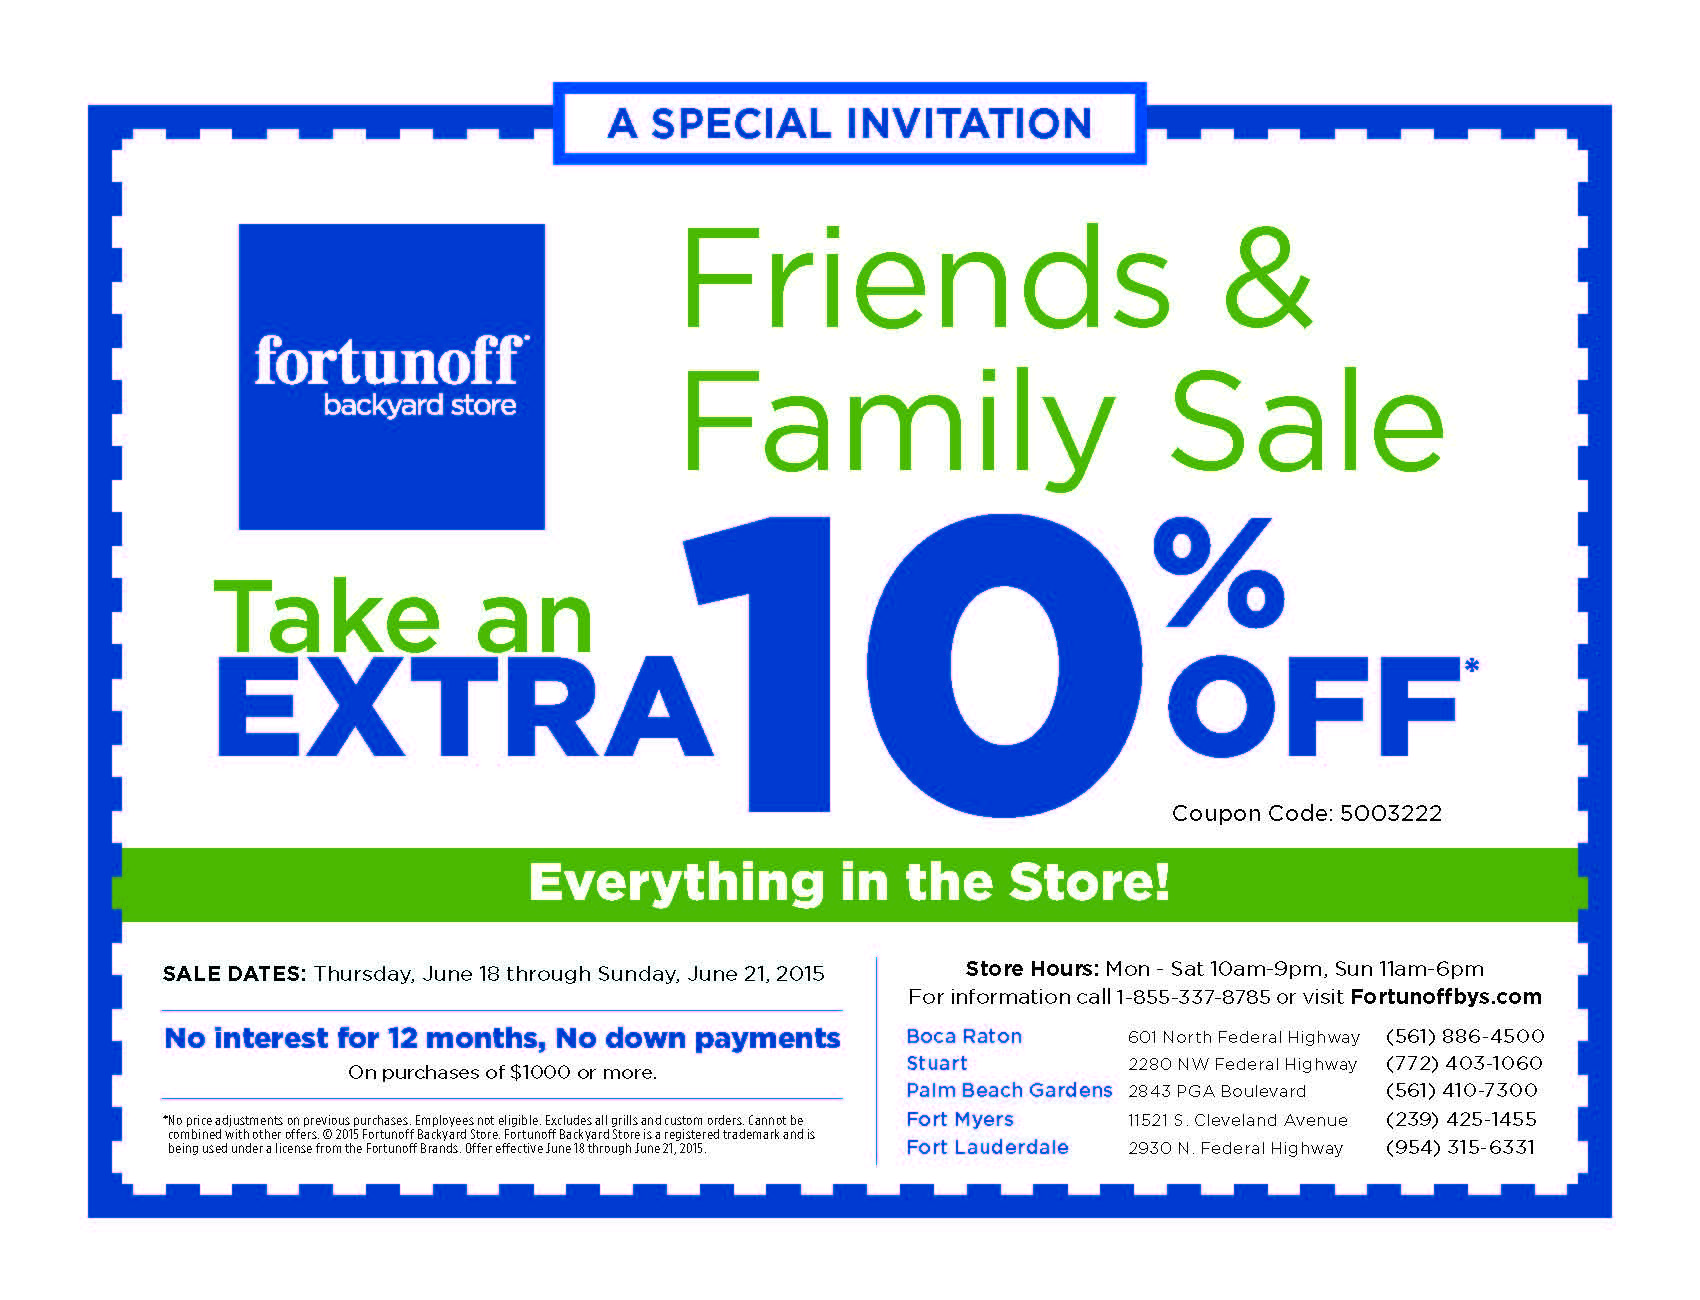 Don T Miss The Friends Family Sale At The Fortunoff Backyard Store Starting Today June 18th June 21 Take An Extra 10 Off Ev Backyard Store Store Hours